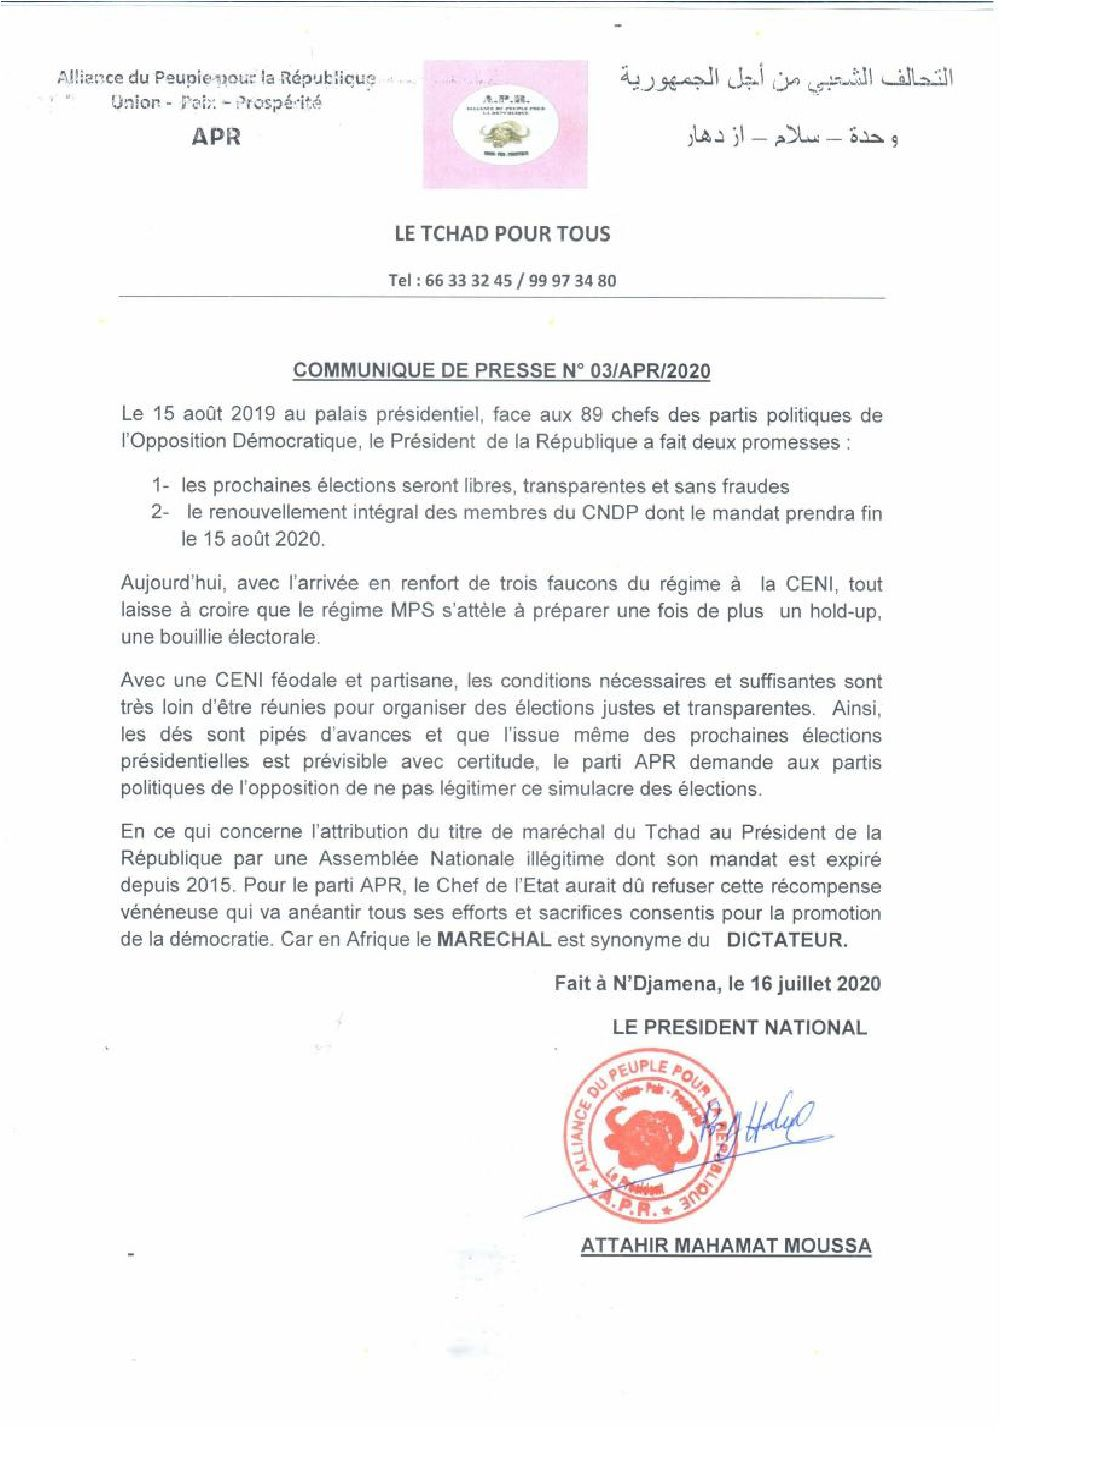 Election au Tchad: l'APR juge féodale et partisane